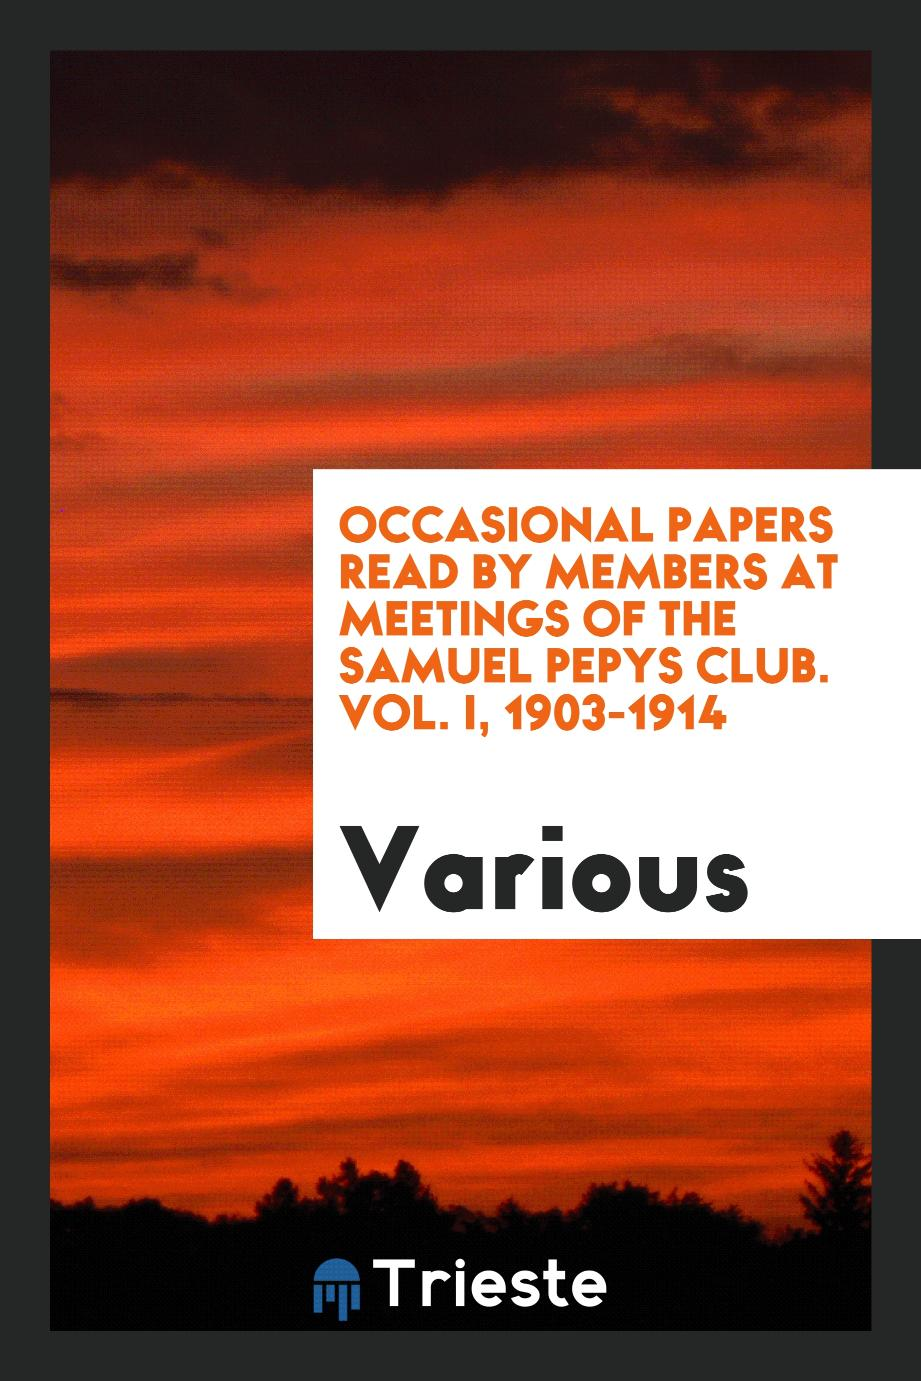 Occasional papers read by members at meetings of the Samuel Pepys Club. Vol. I, 1903-1914